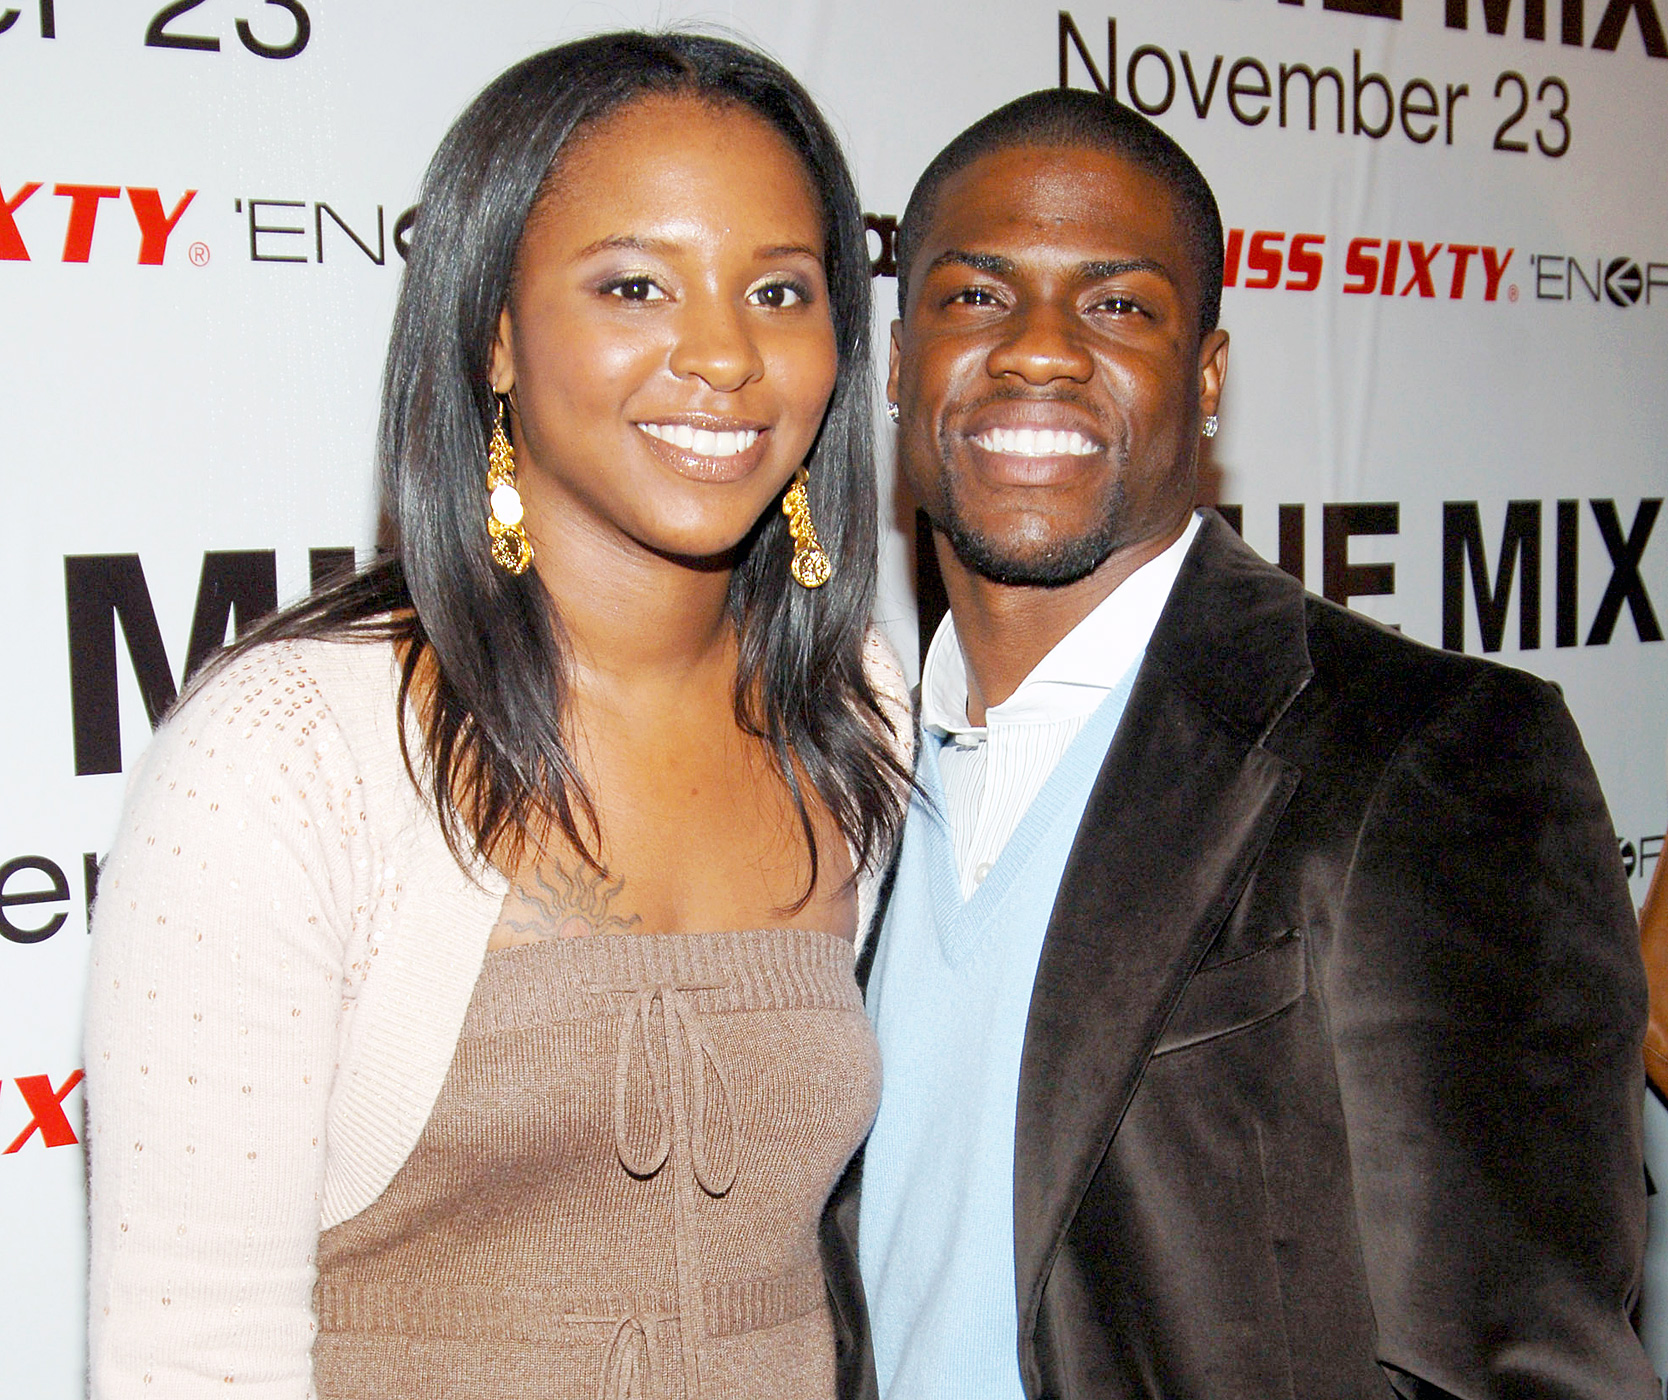 Comedian Kevin Hart and his former wife Torrei, while they got divorced in 2011.